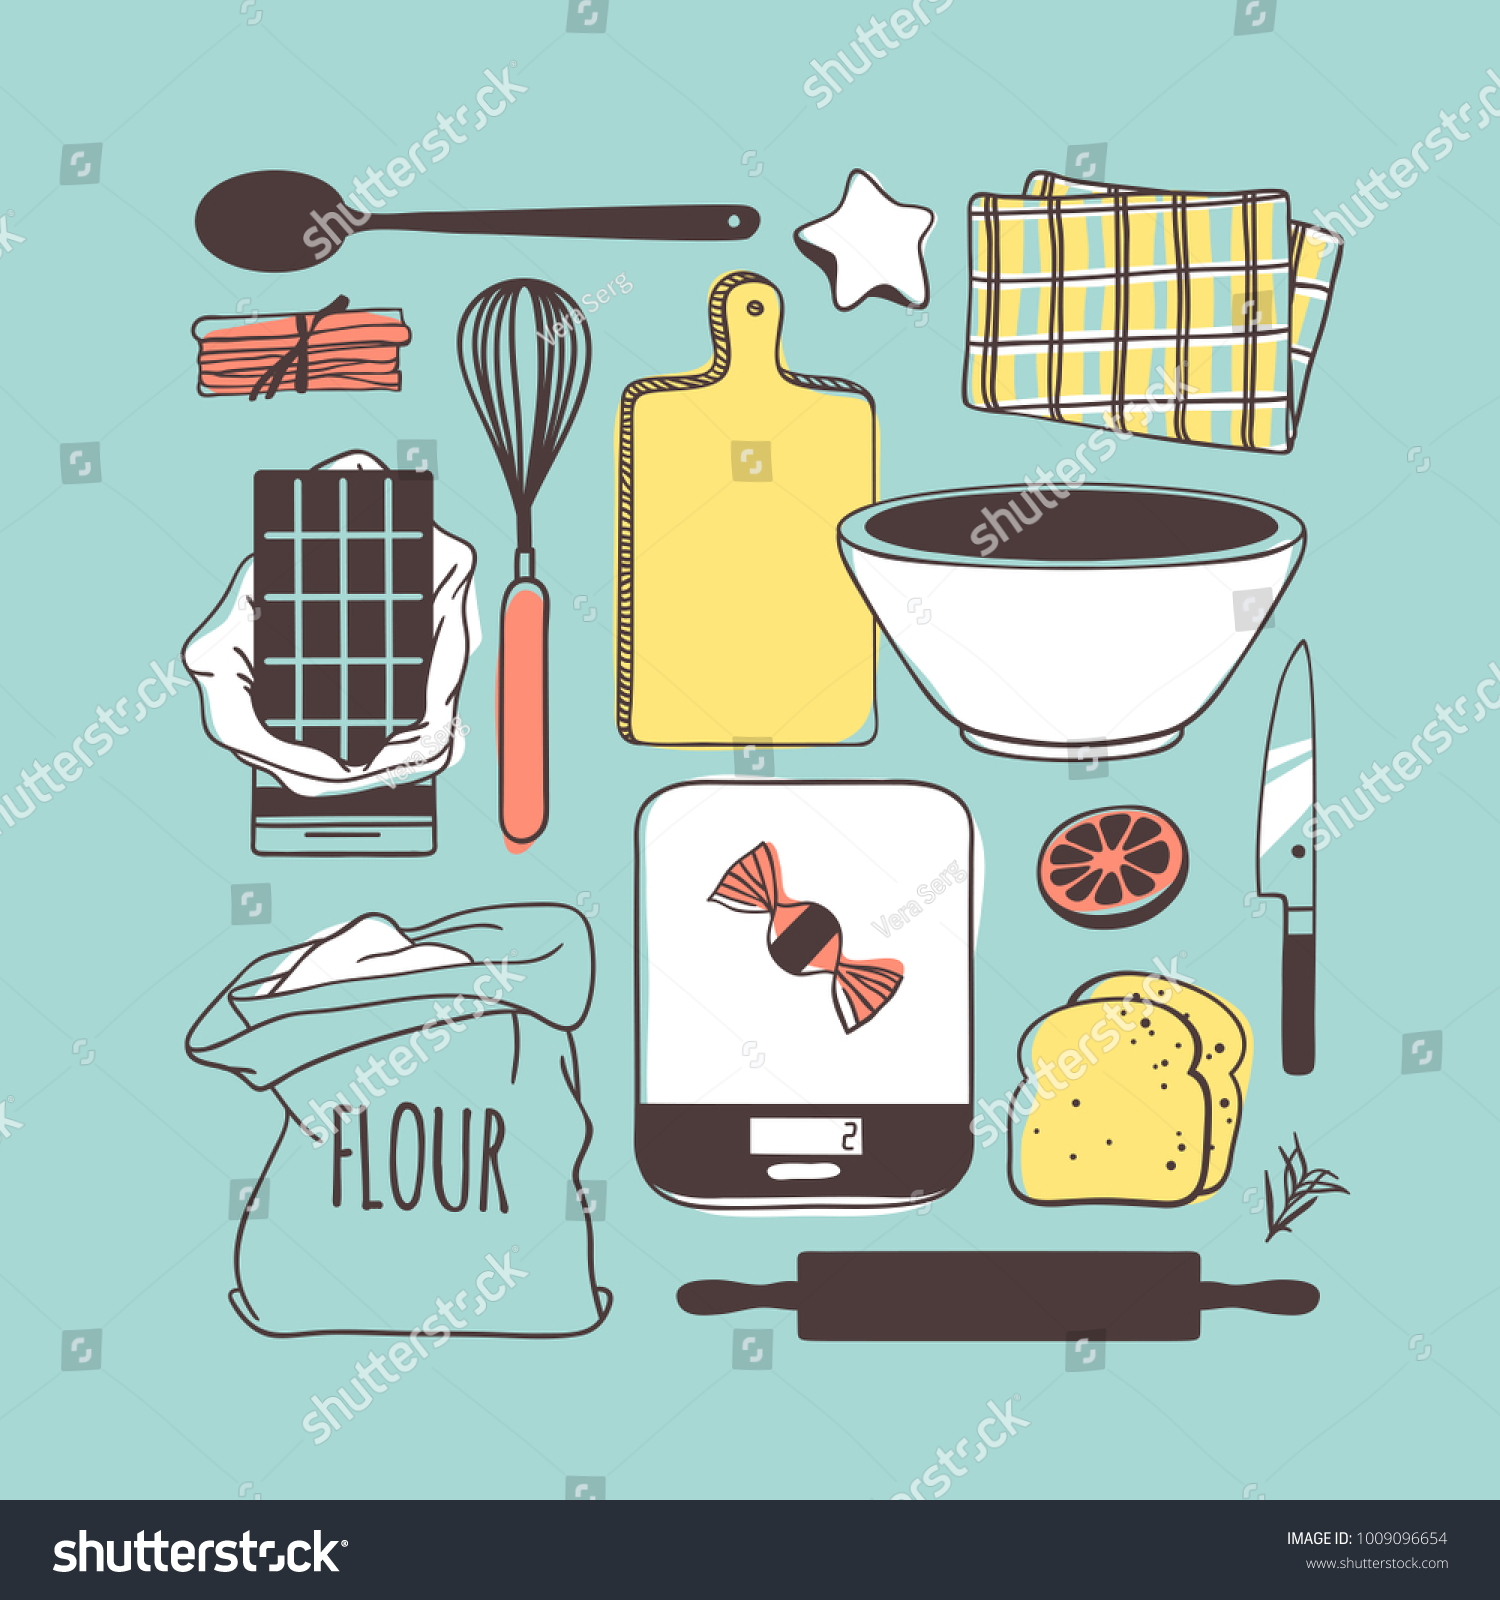 Hand Drawn Illustration Cooking Tools Dishes Stock Vector (Royalty ...